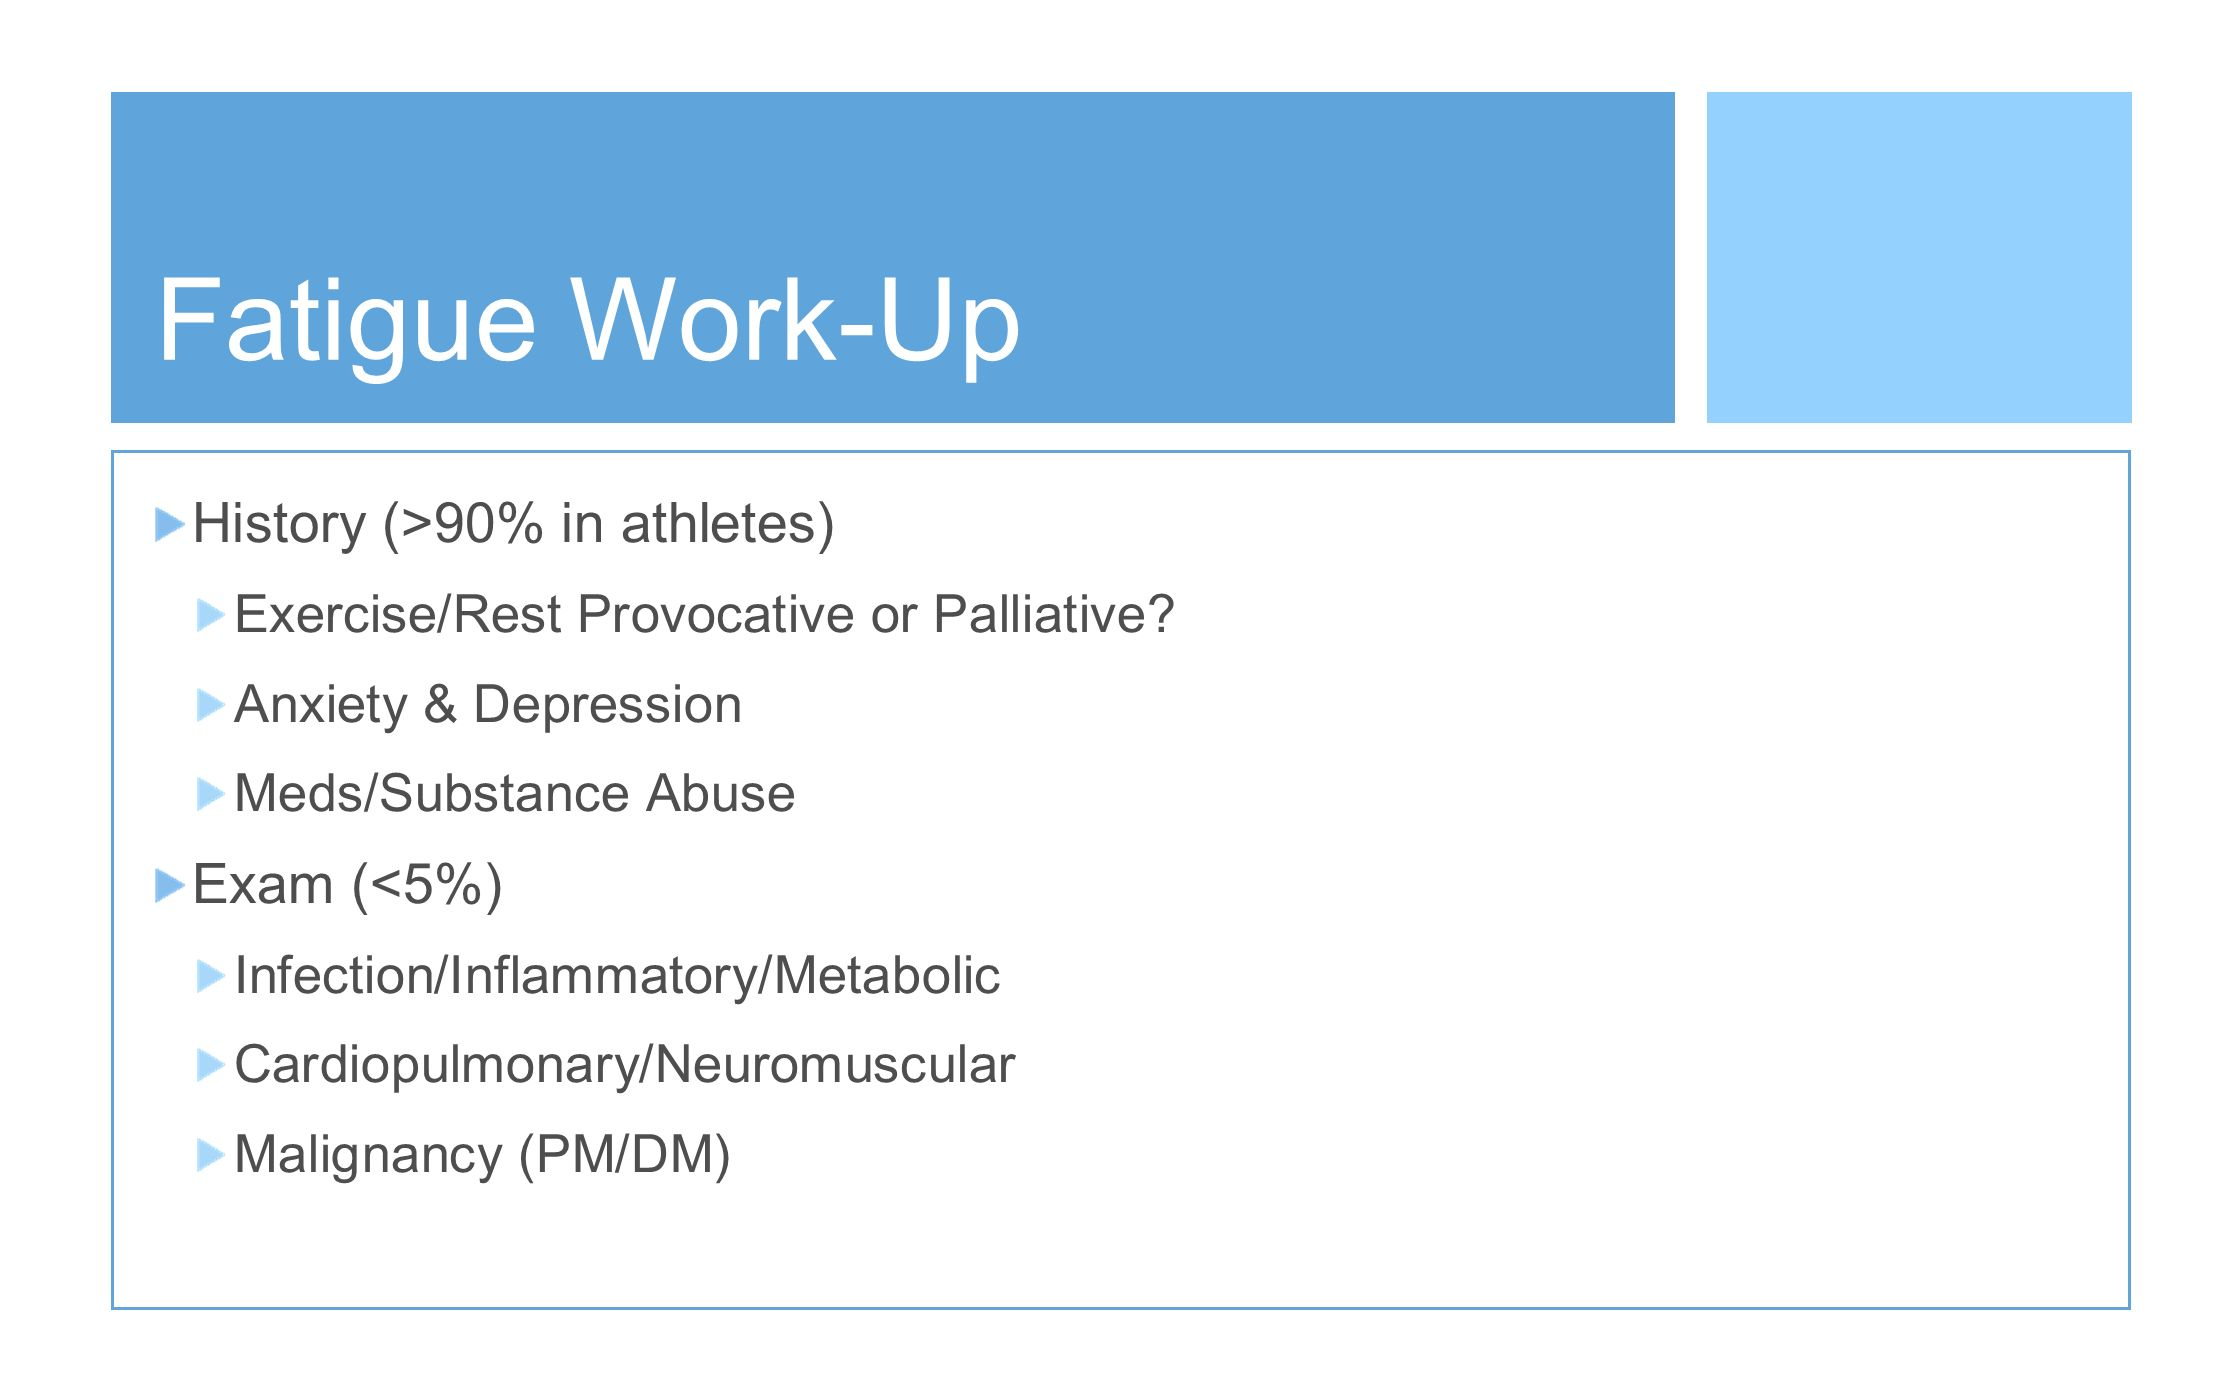 Fatigue Work-Up History (>90% in athletes) Exam (<5%)